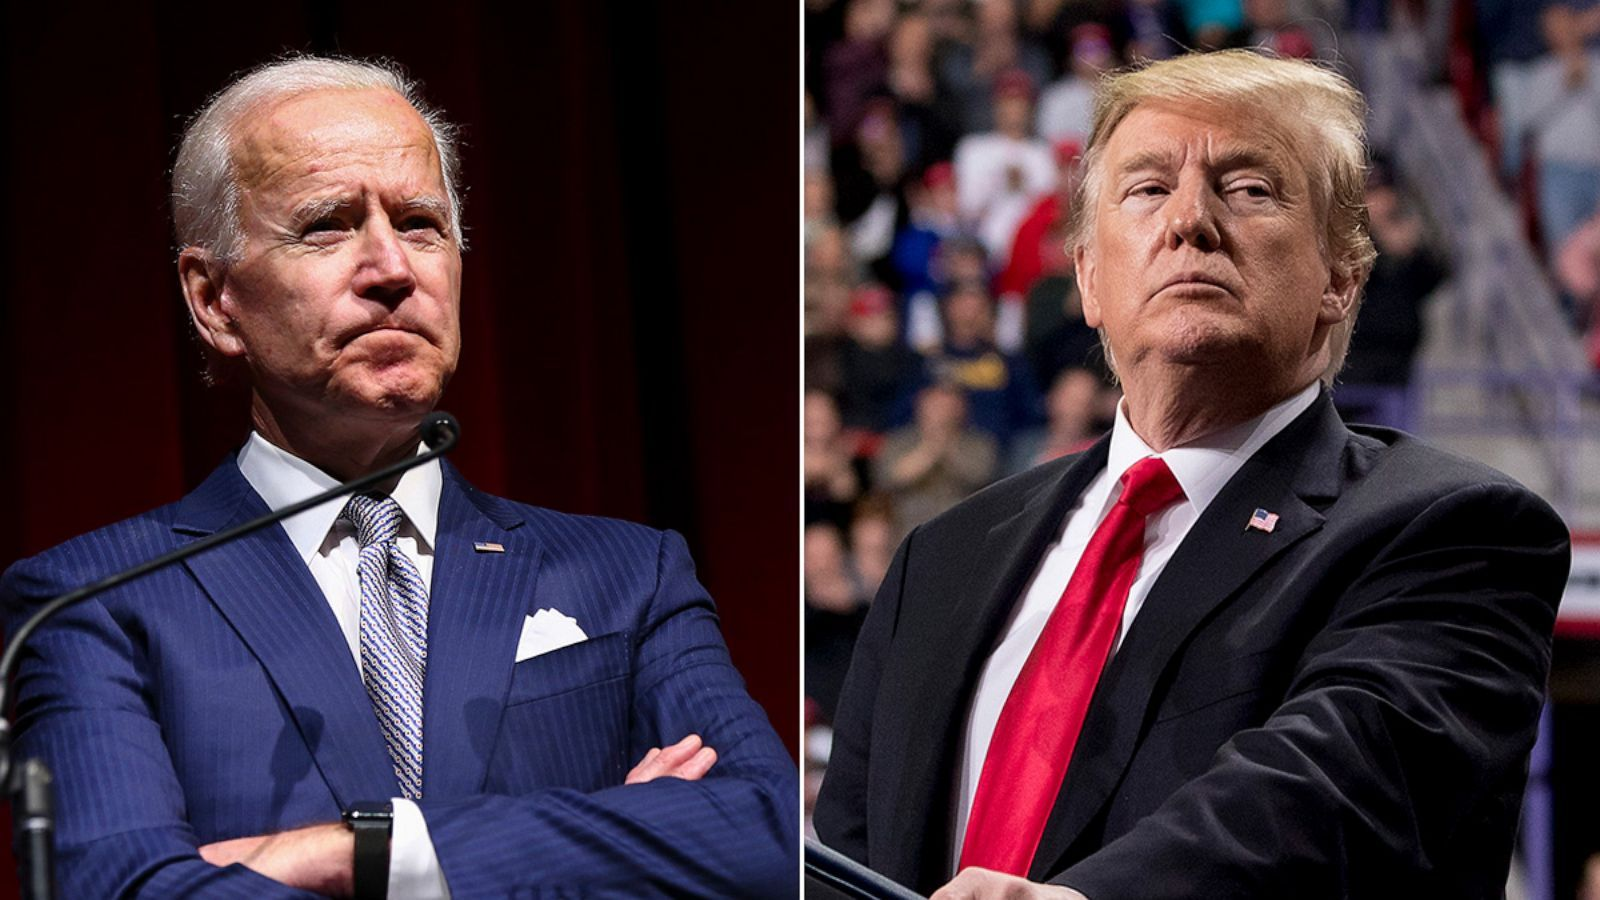 PRESIDENTIAL DEBATE: Biden asks for break every 30 minutes; Trump campaign asks for inspections for ear piece on Biden